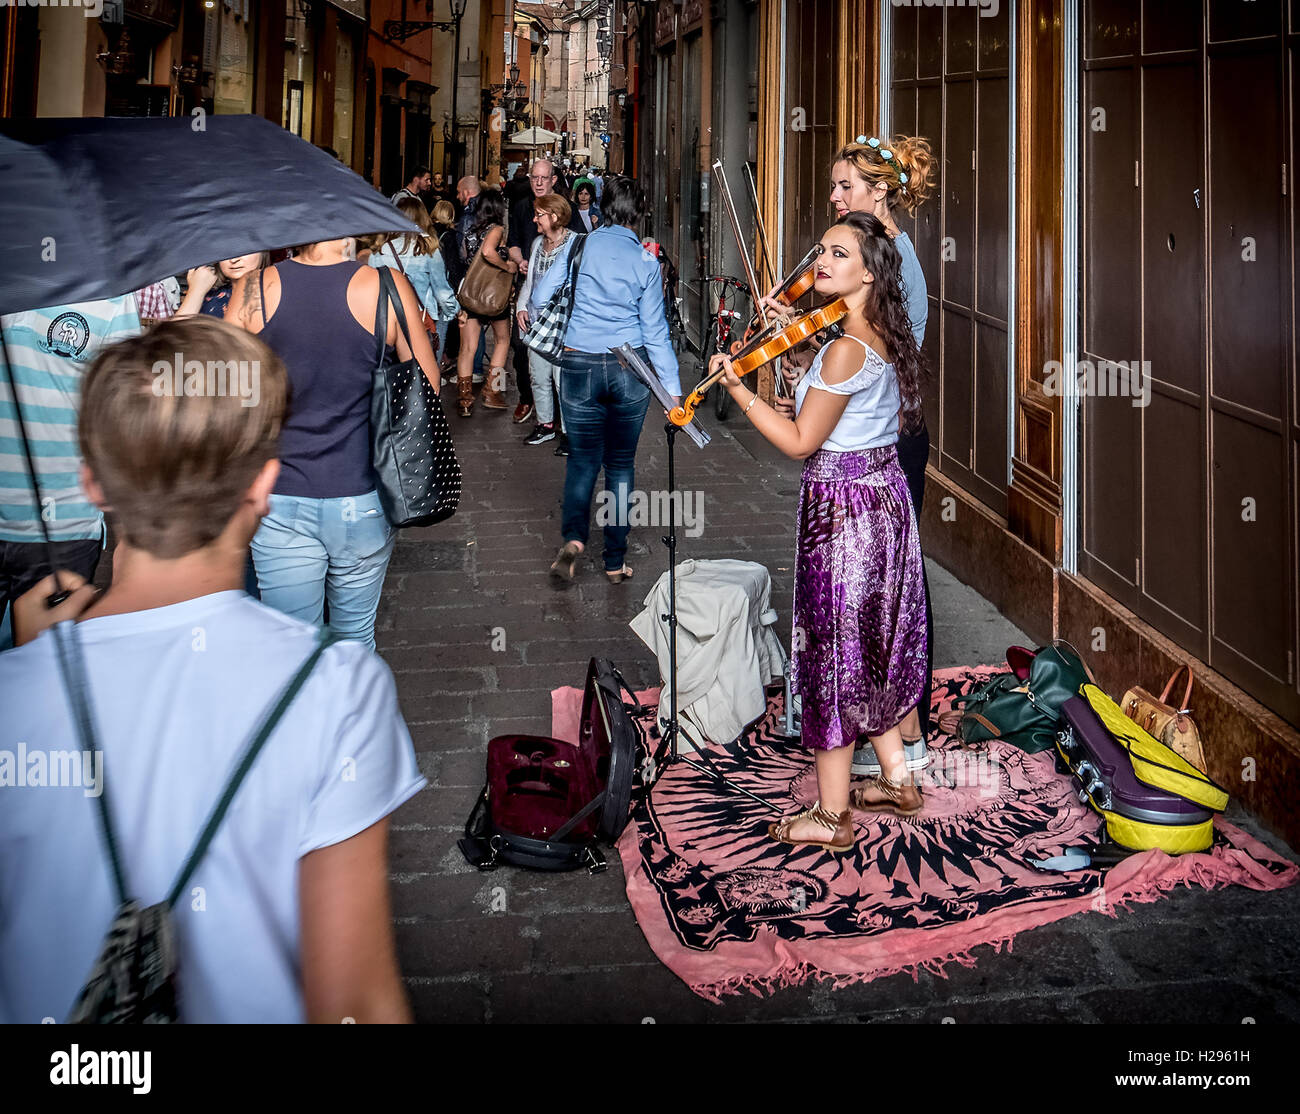 two buskers violinists perform for the passersby in the historic district of Bologna. - Stock Image